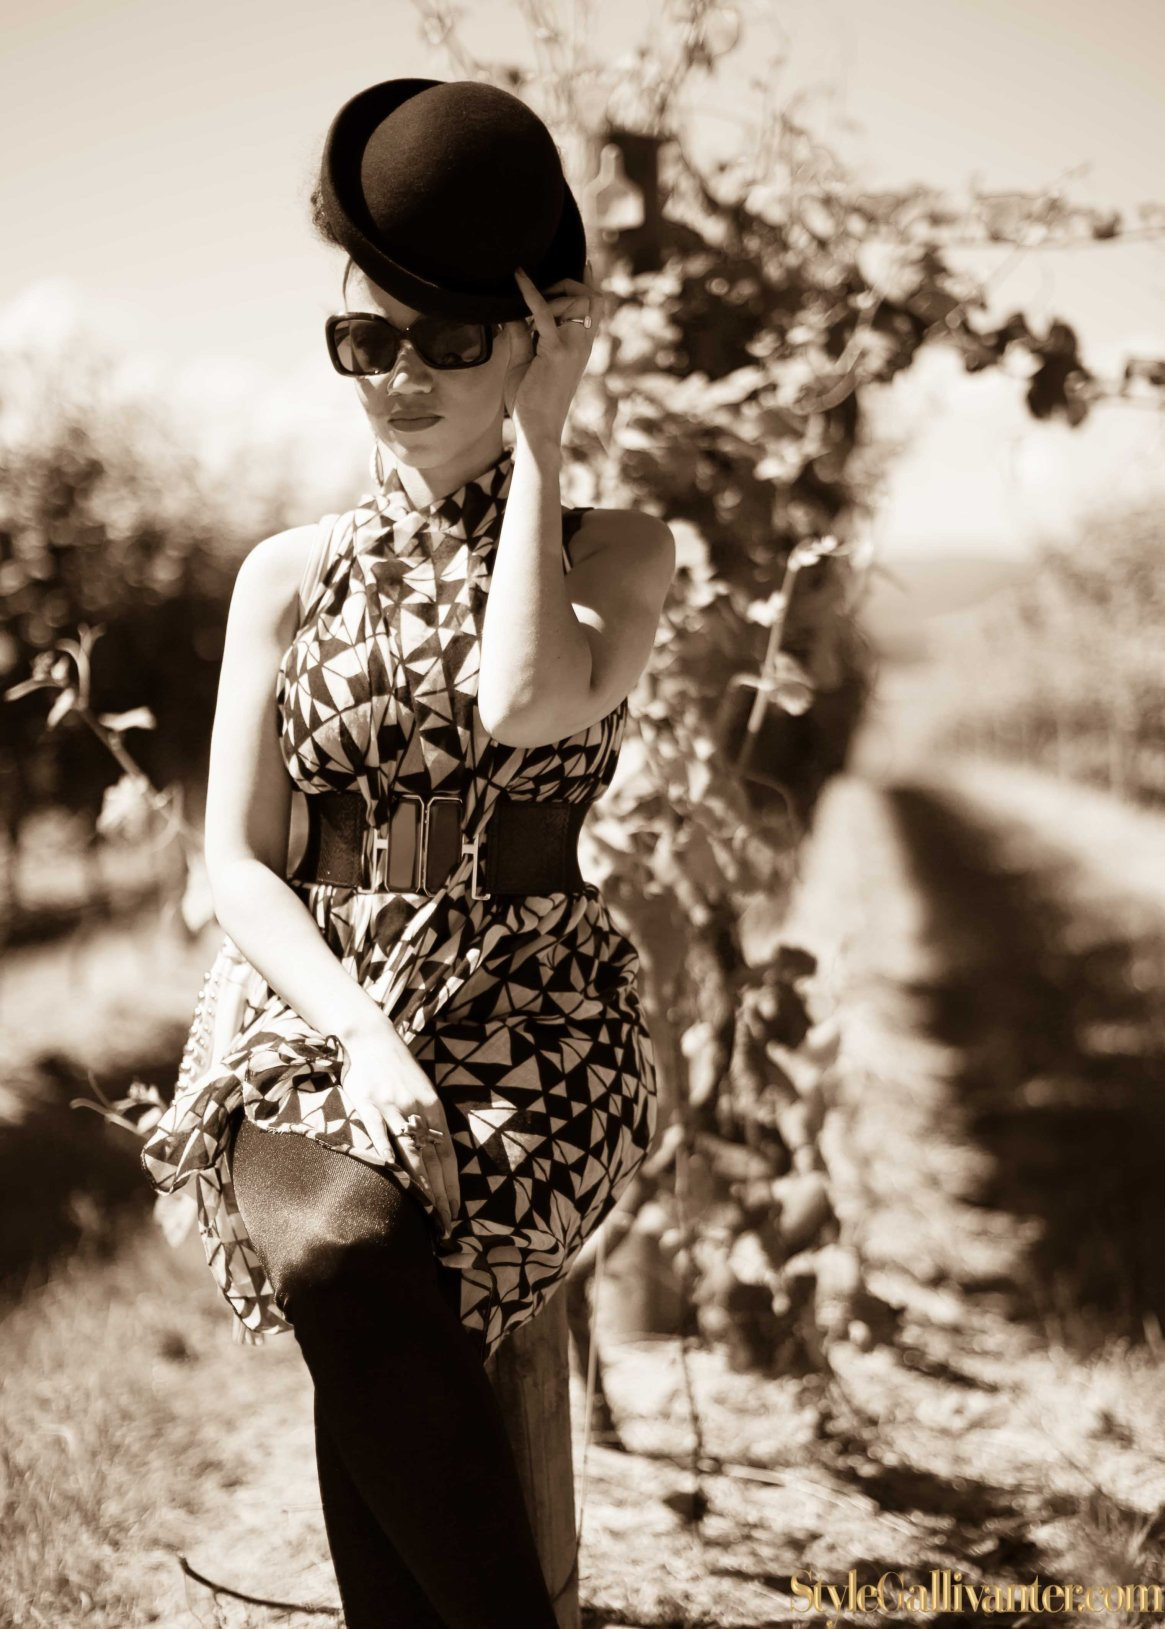 best-new-bloggers-2014_sepia-fashion-editorials_monochrome-sepia_how-to-wear-a-scarf_best-new-bloggers-melbourne-australia-2014_top-african-hair-bloggers_best-hair-bloggers-11